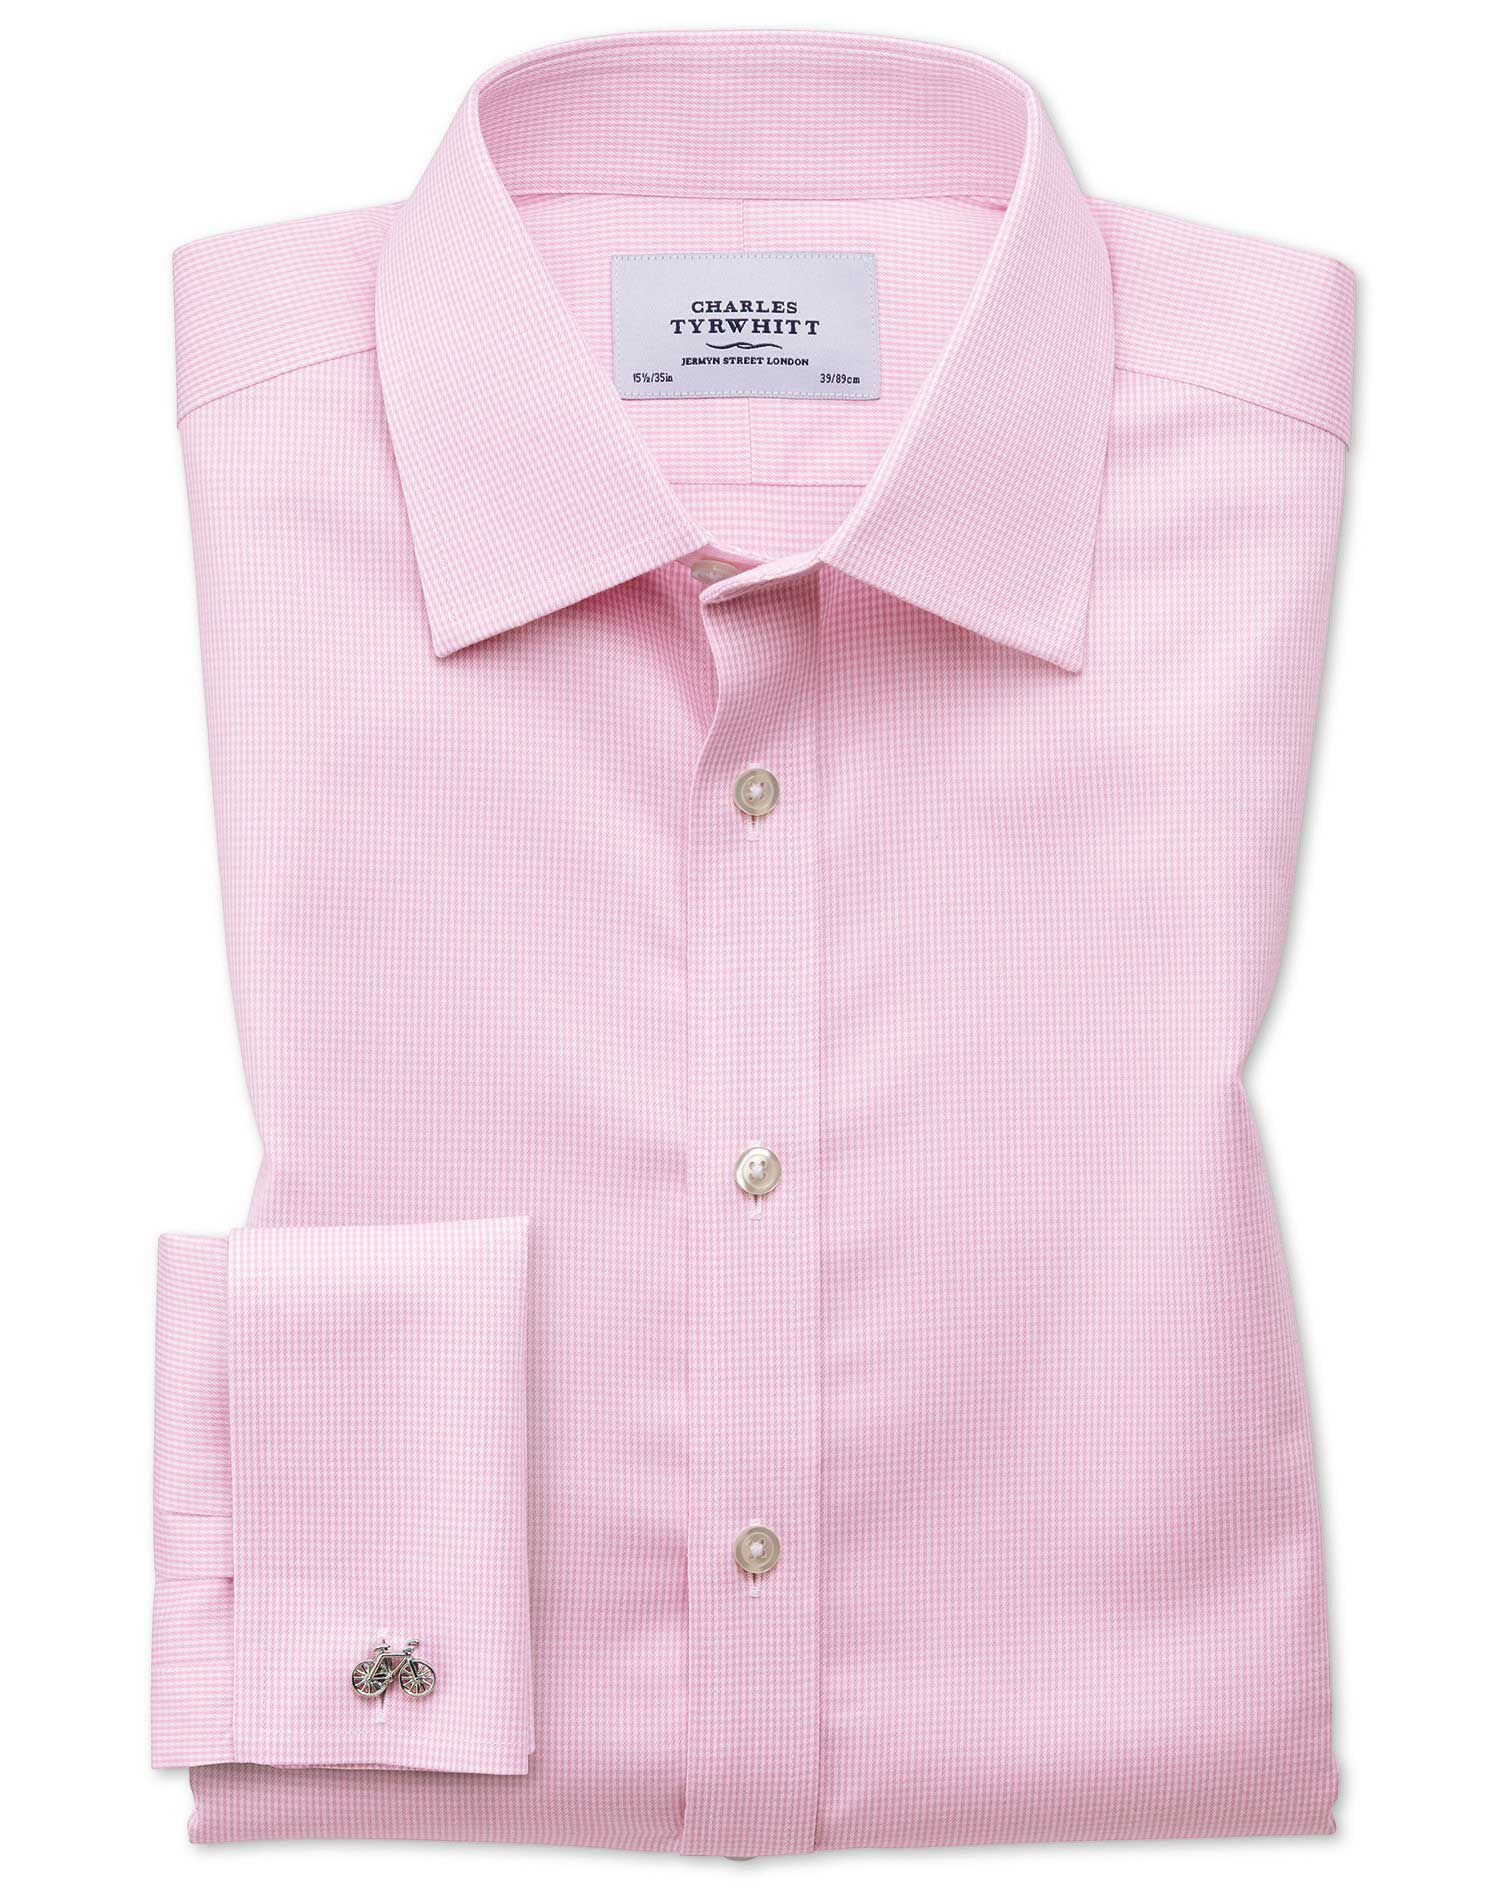 Slim Fit Non-Iron Puppytooth Light Pink Cotton Formal Shirt Single Cuff Size 15.5/36 by Charles Tyrw